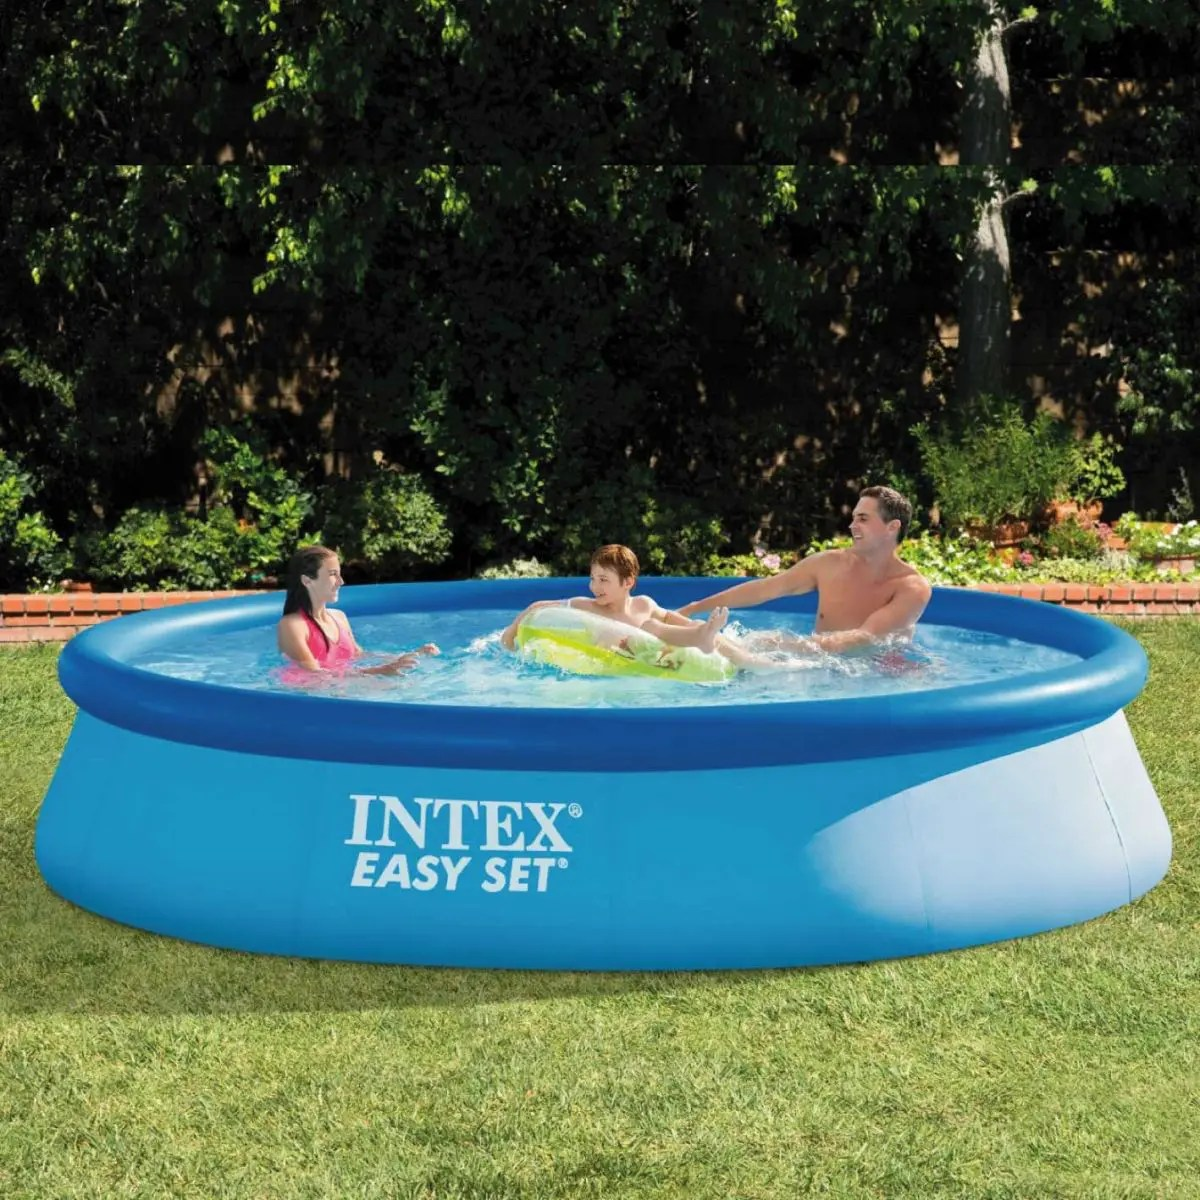 Piscinas Intex Site Piscina Inflável Easy Set 7 290 Litros Intex